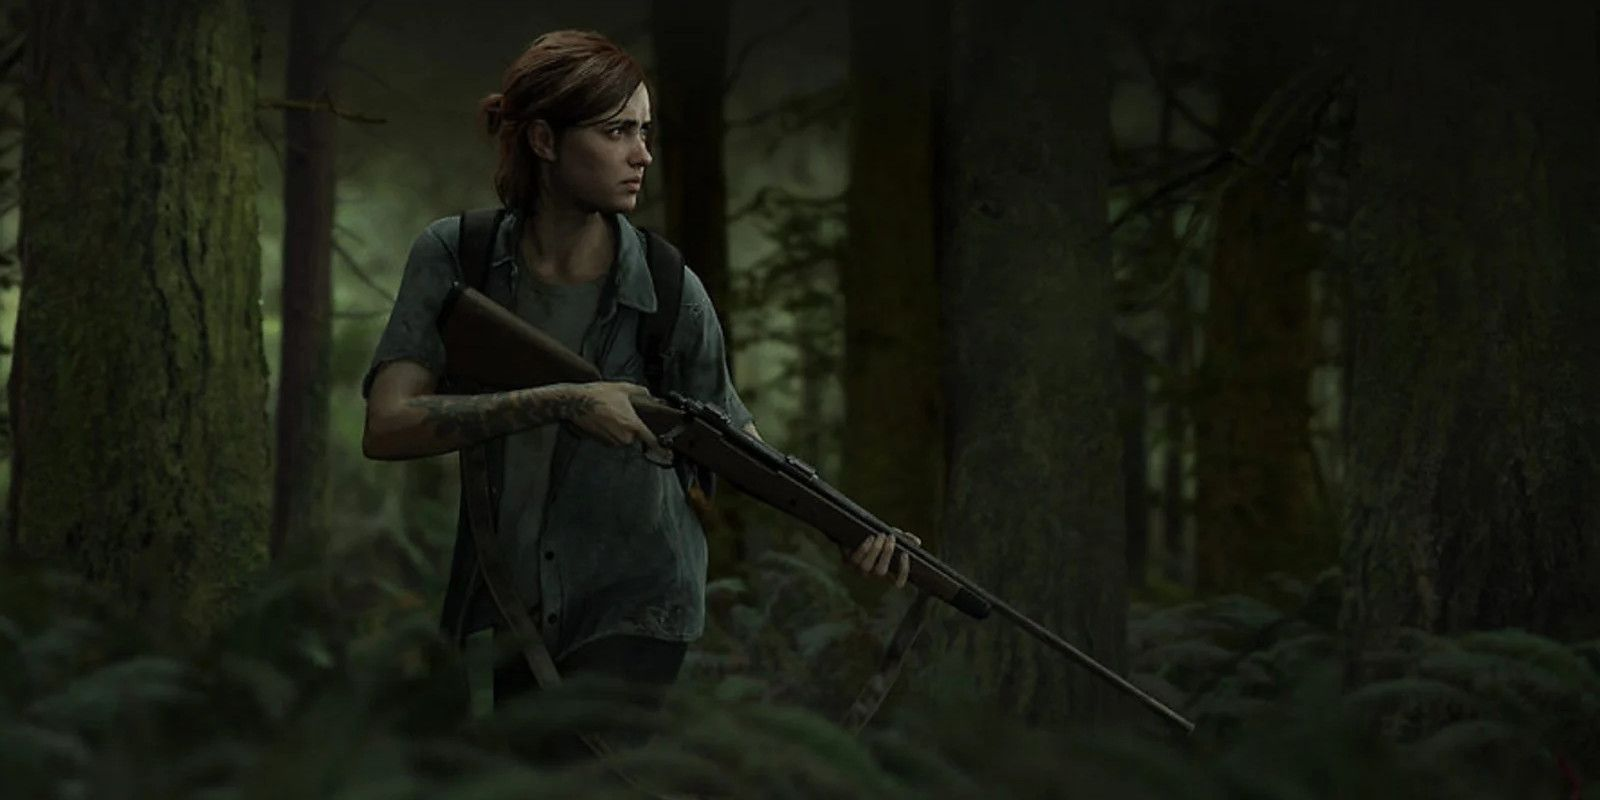 Custom The Last Of Us-Inspired PS5 Looks Incredibly Apocalyptic